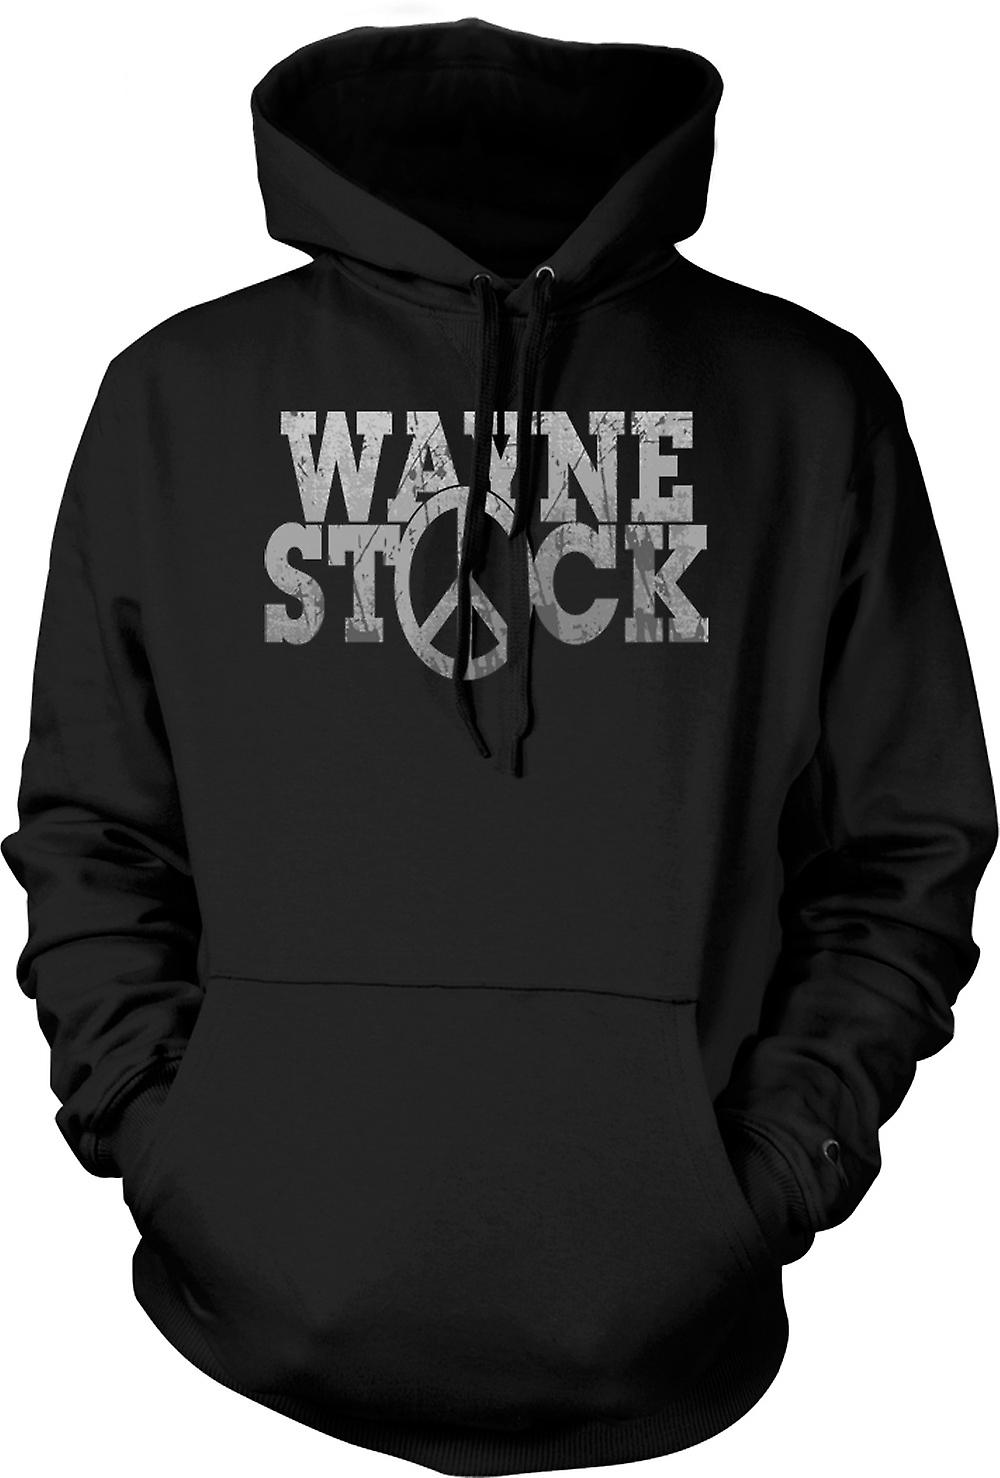 Mens Hoodie - Wayne Stock - Waynes World